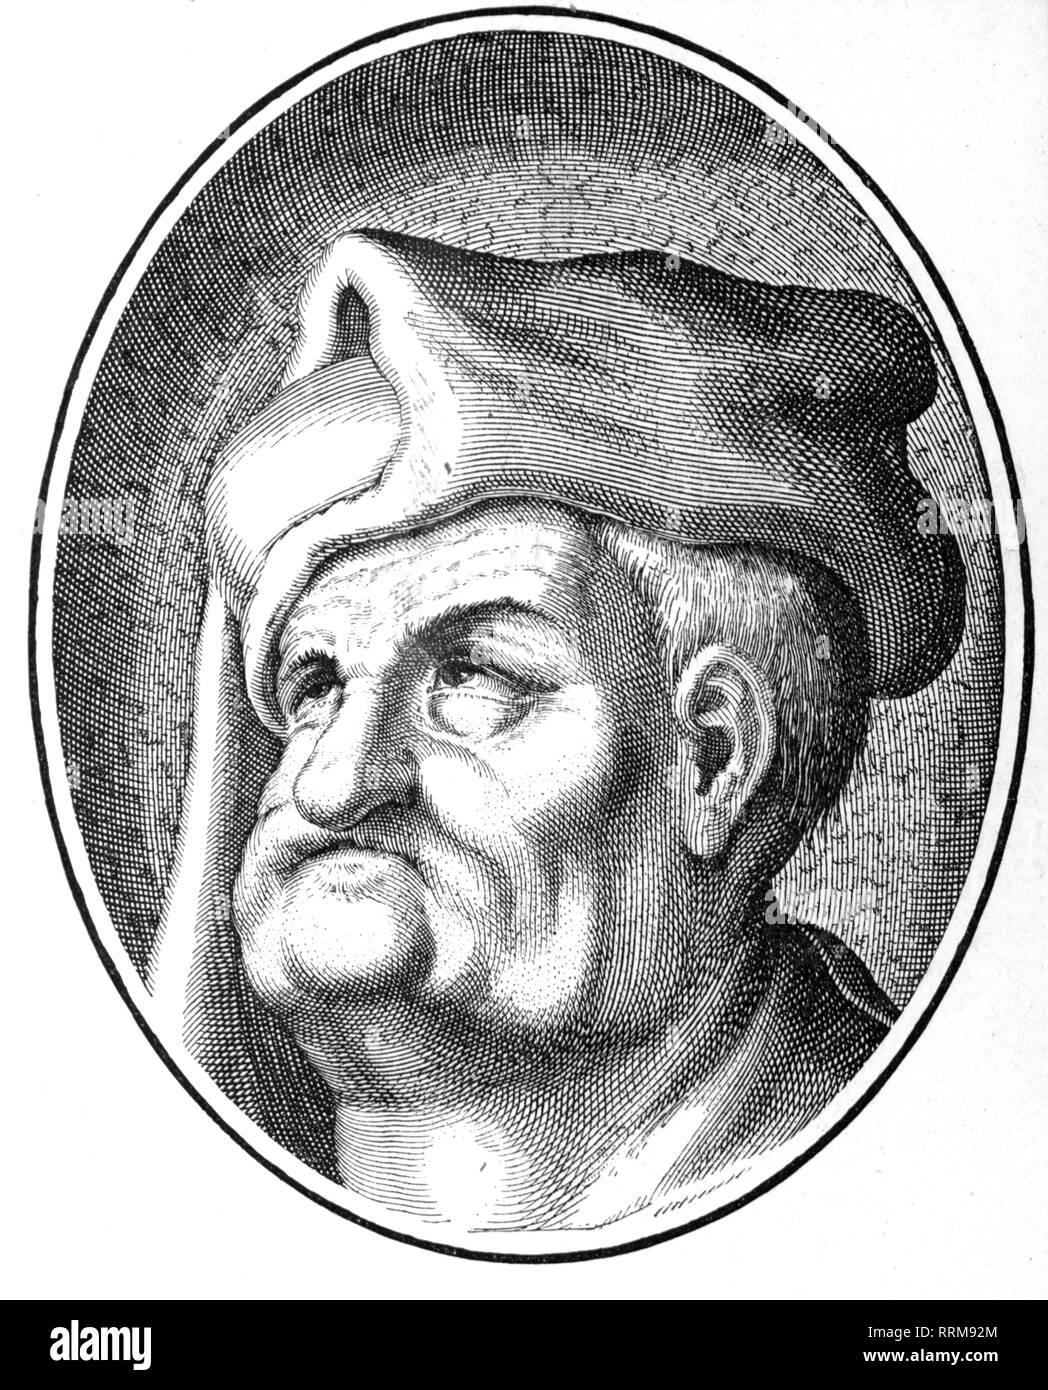 Claus Narr, before 1486 - after 1530, Saxon jester, portrait, after copper engraving, 16th century, Artist's Copyright has not to be cleared - Stock Image